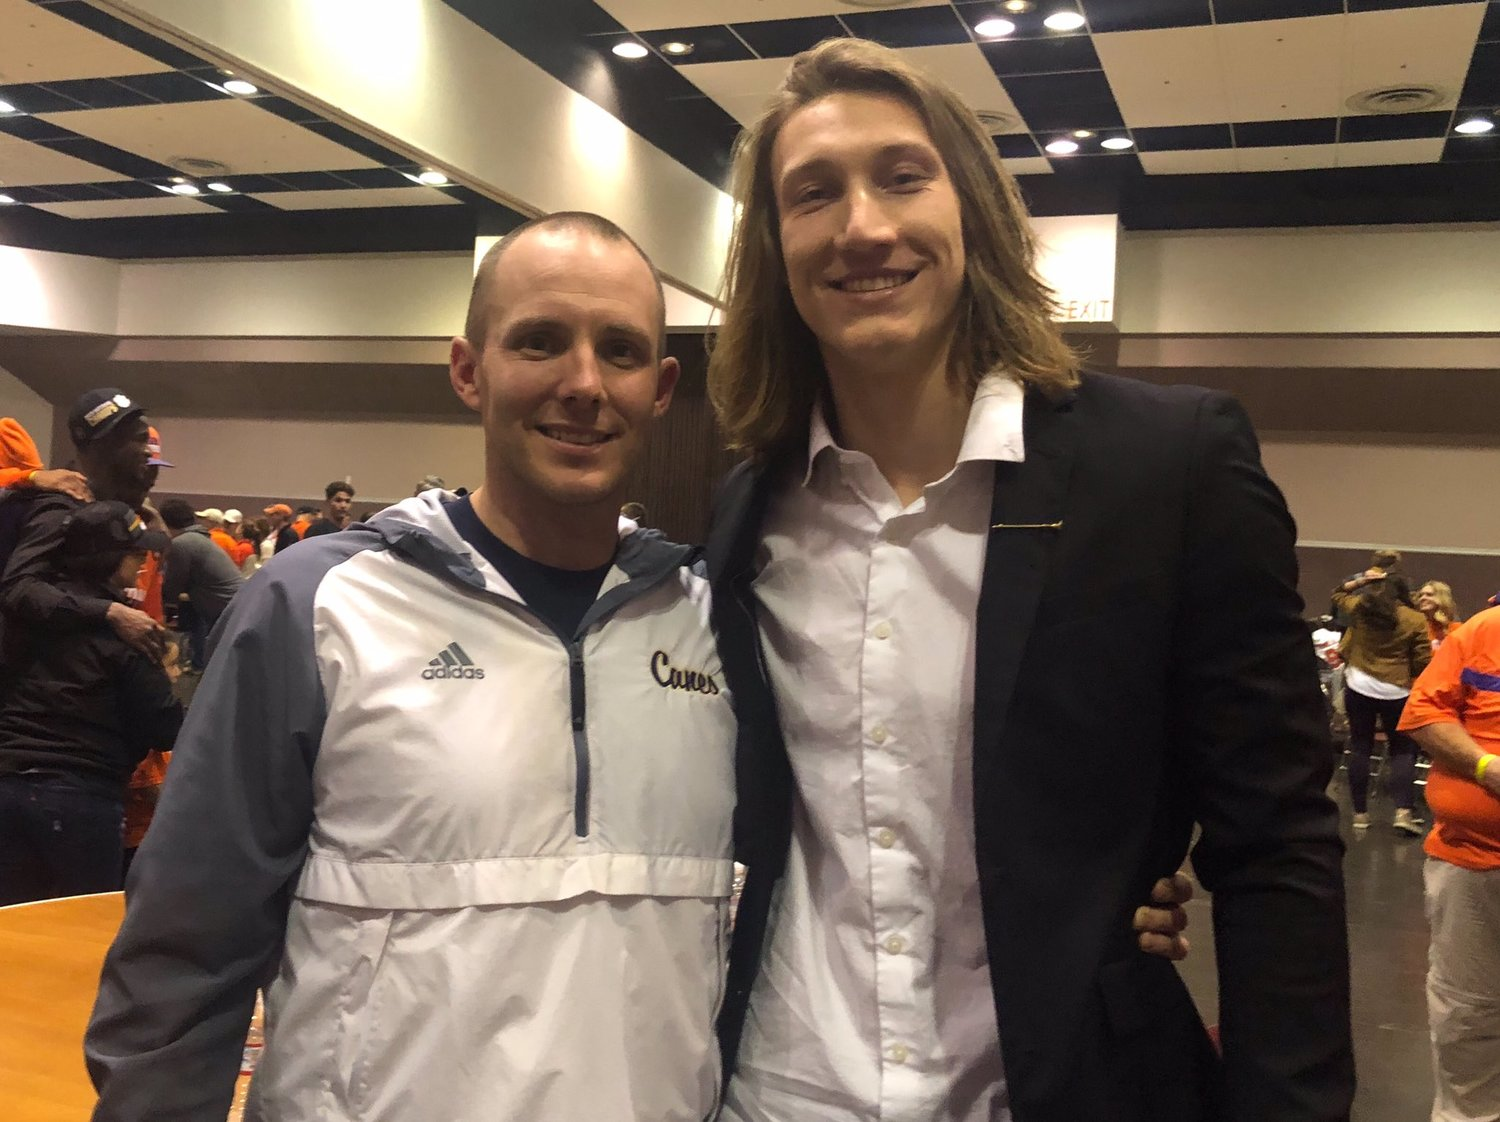 Cartersville High head football coach Joey King poses for a picture with former Canes quarterback Trevor Lawrence after Lawrence led Clemson to the national championship Monday night.